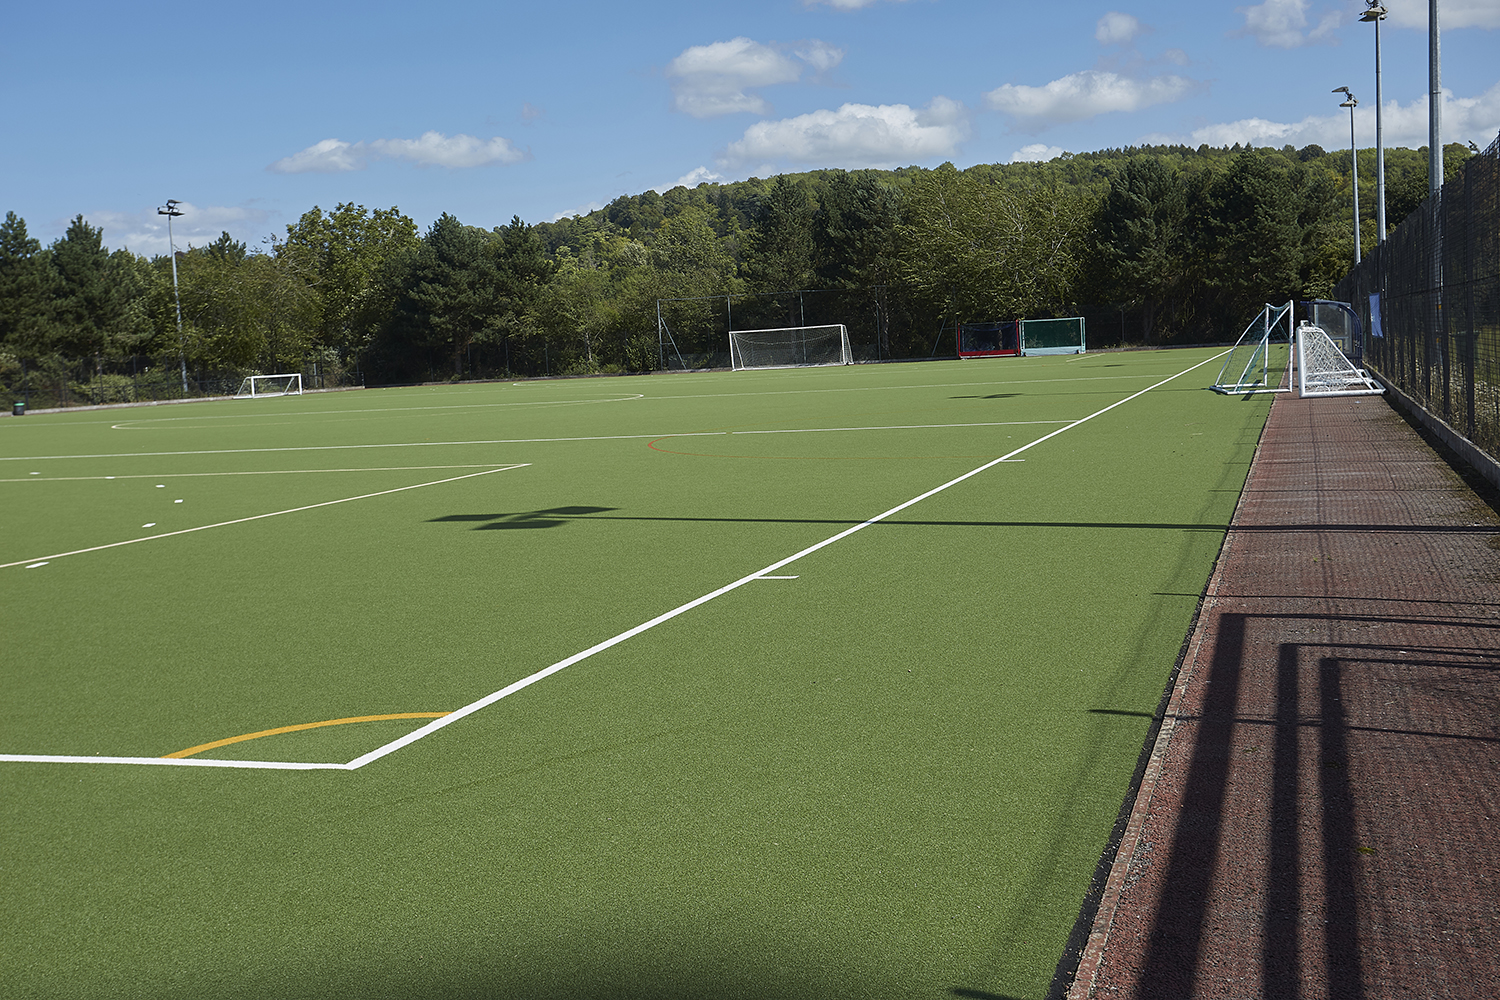 Henley Town Council - Empty sports field on a sunny day